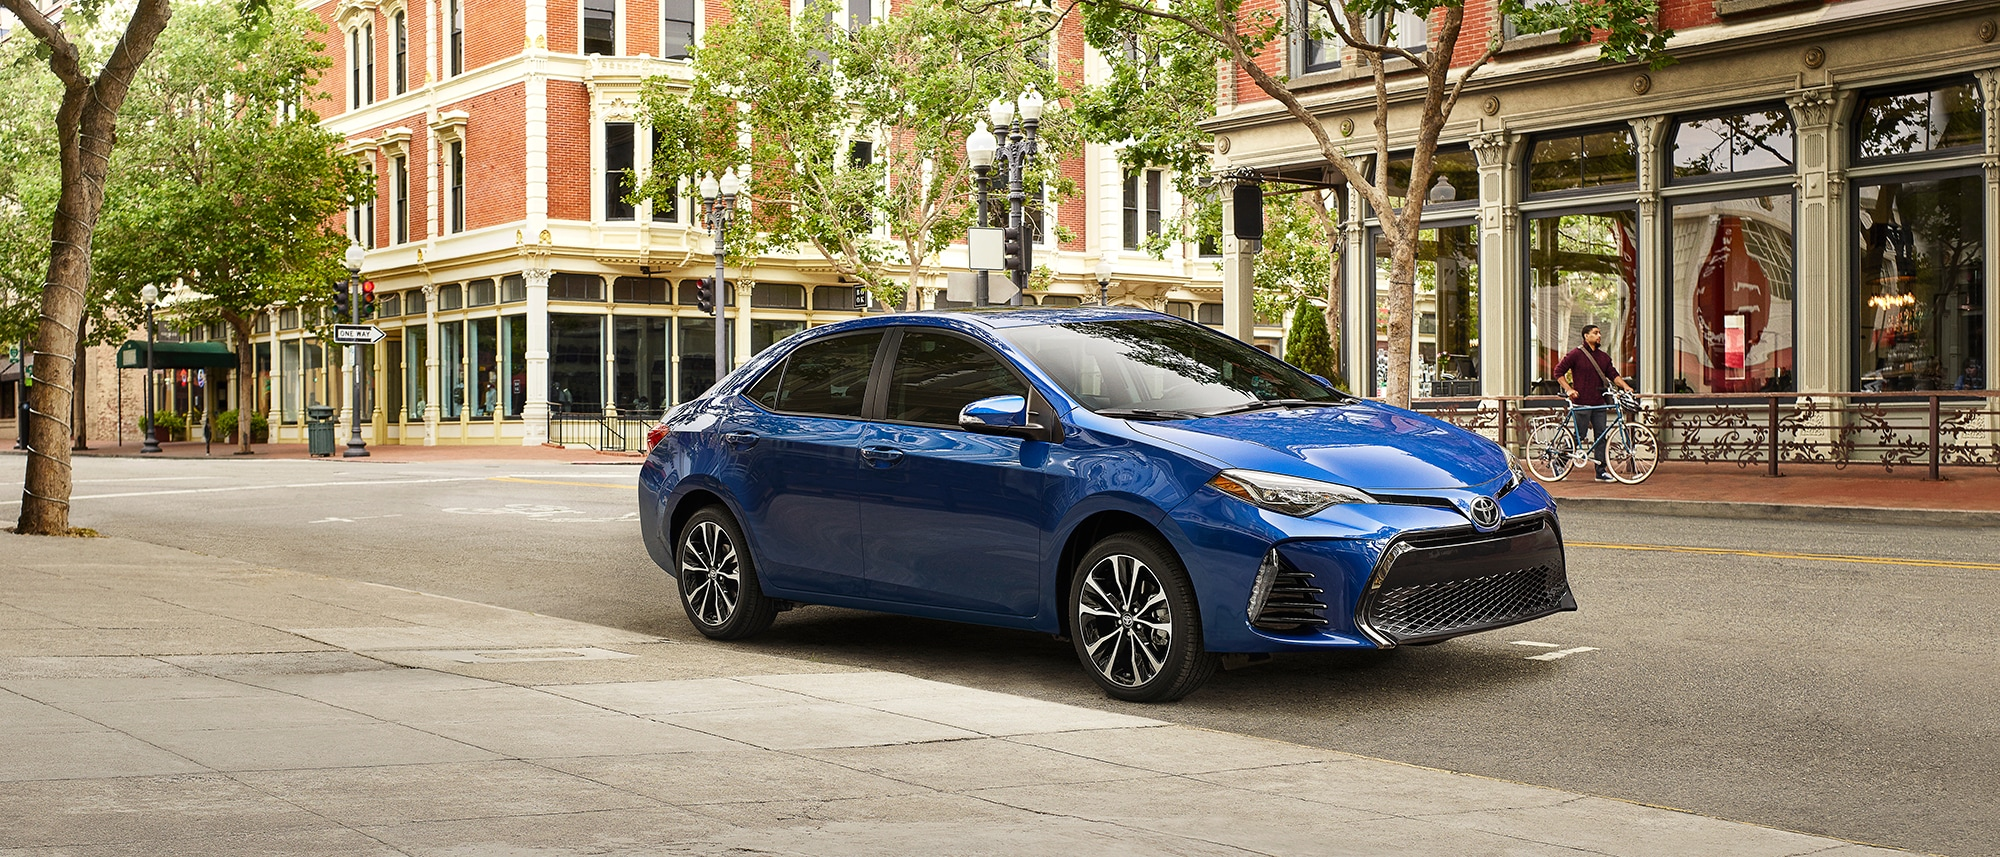 blue 2019 corolla driving down a street